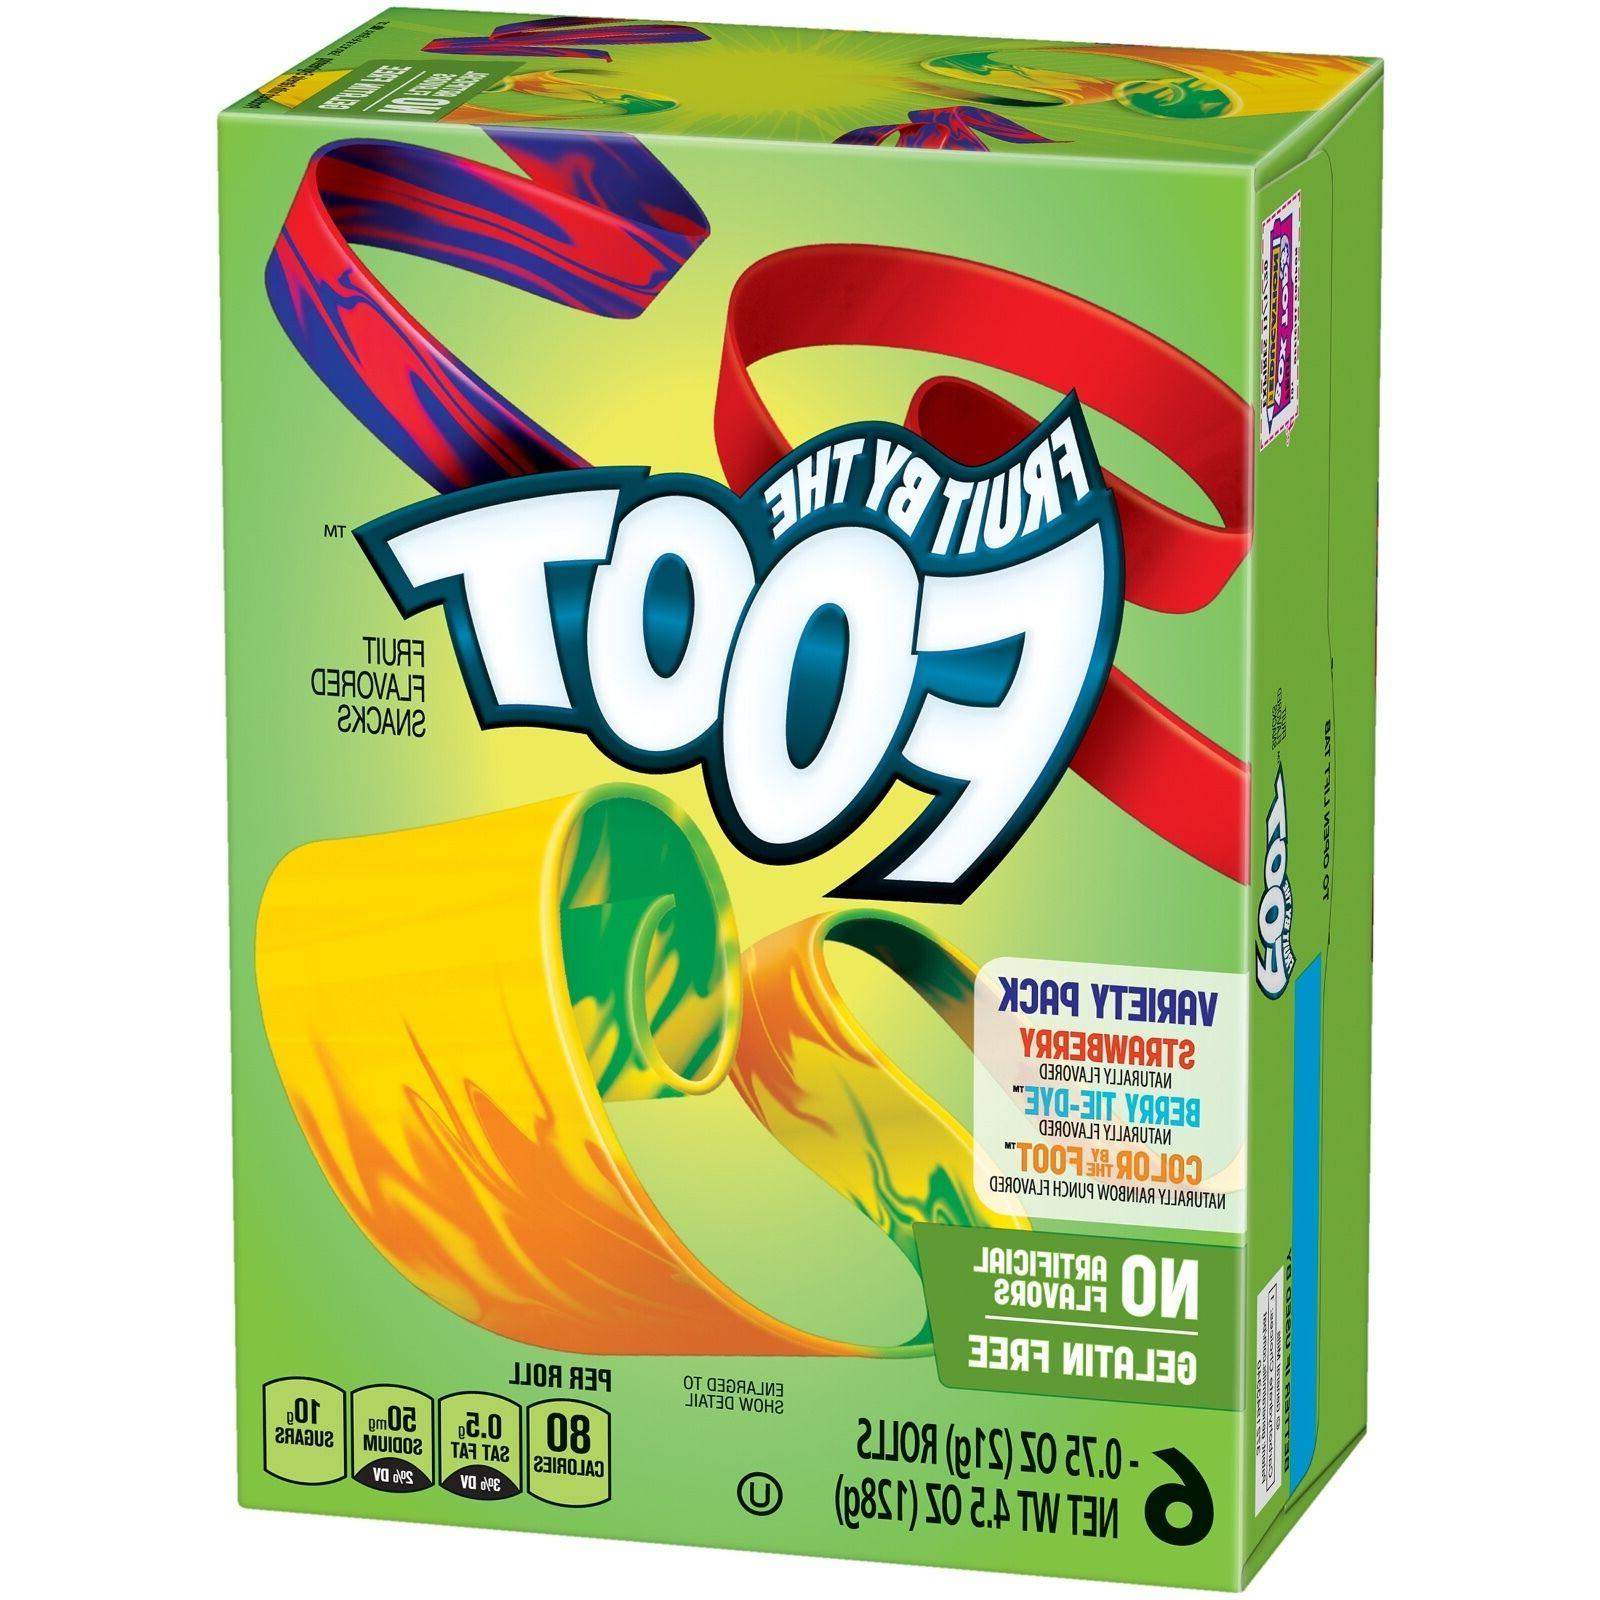 NEW FRUIT BY THE FOOT FRUIT FLAVORED SNACKS 6 ROLLS 4.5 0Z V